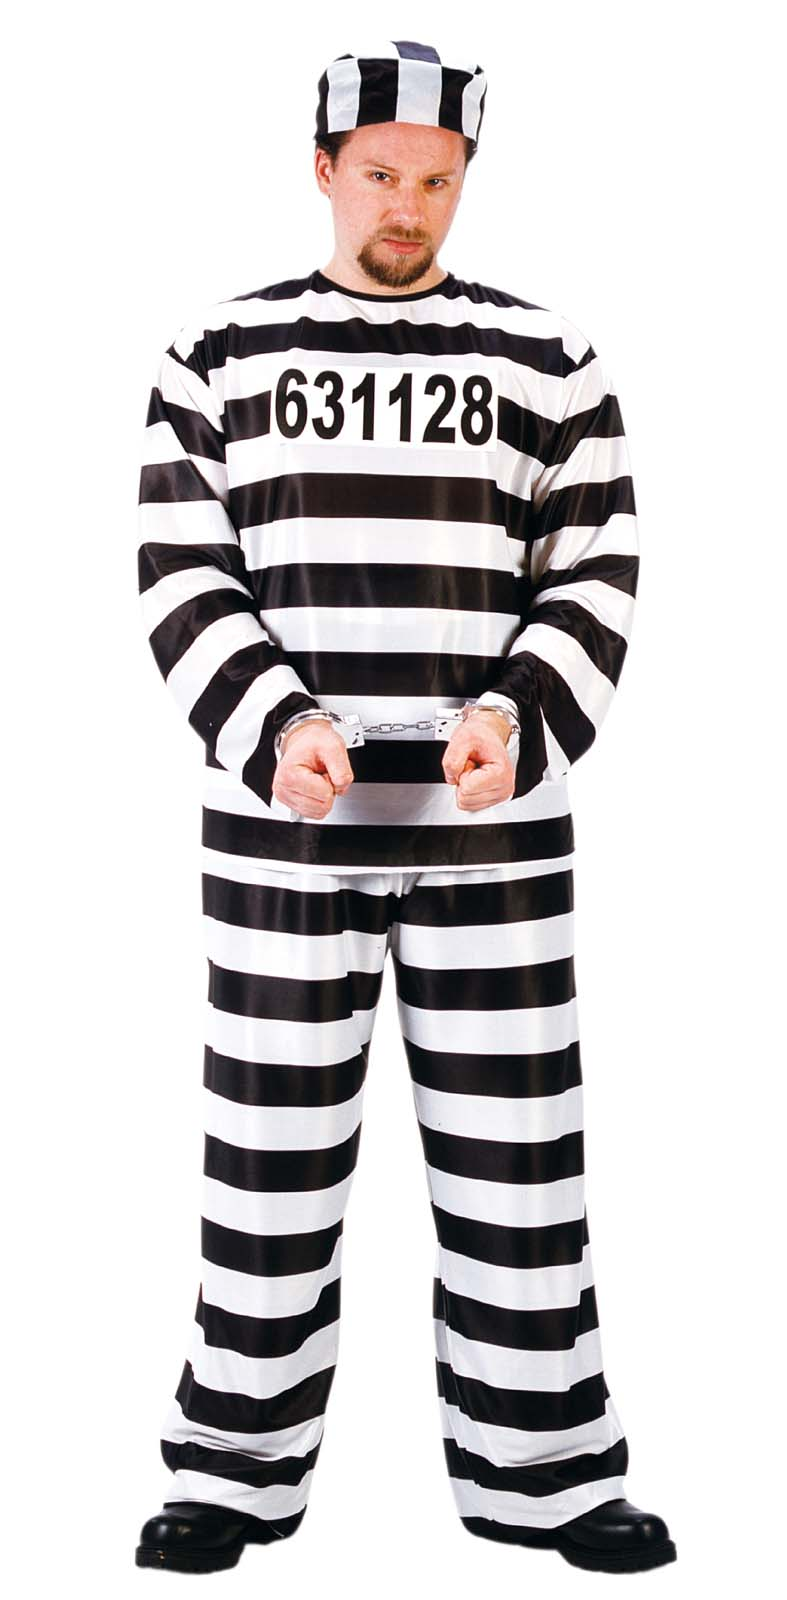 Jailbird Jail Costume Prison Jumpsuit Stripe Convict